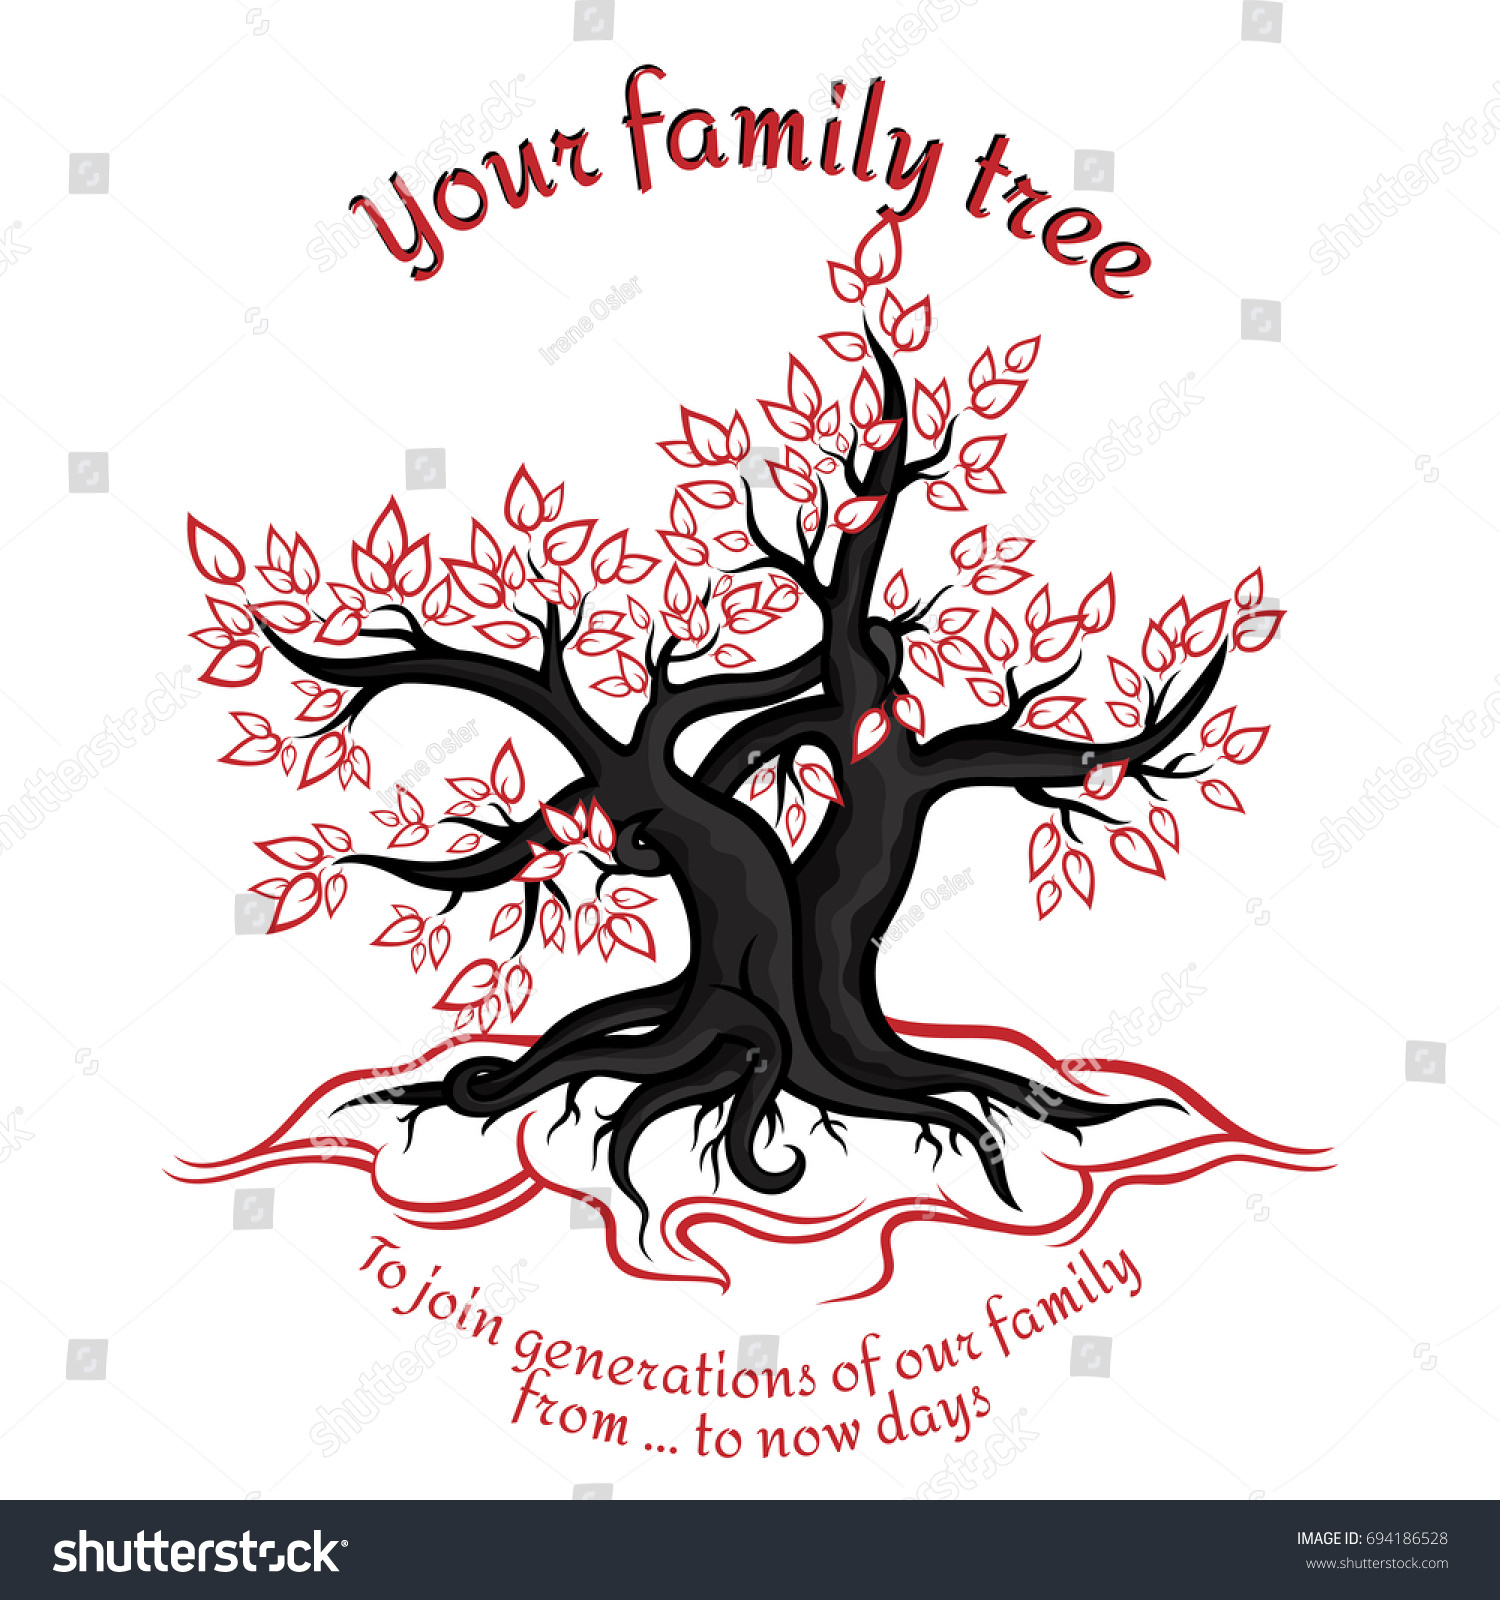 Genealogical Tree Concept Union Generations Red Stock Vector